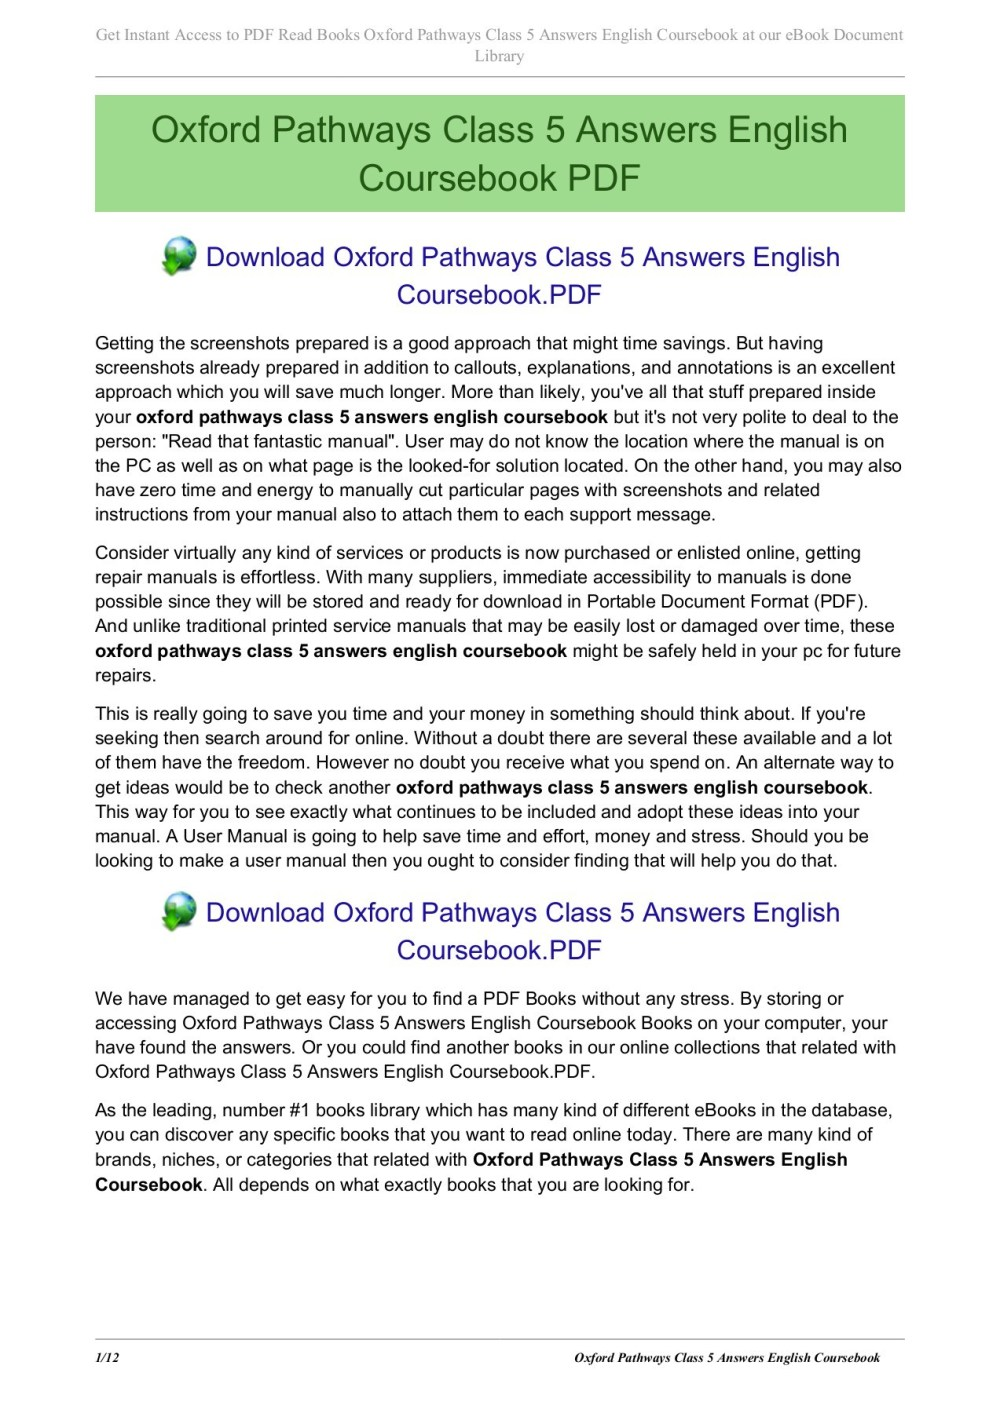 medium resolution of oxford pathways class 5 answers english coursebook pages 1 12 text version fliphtml5